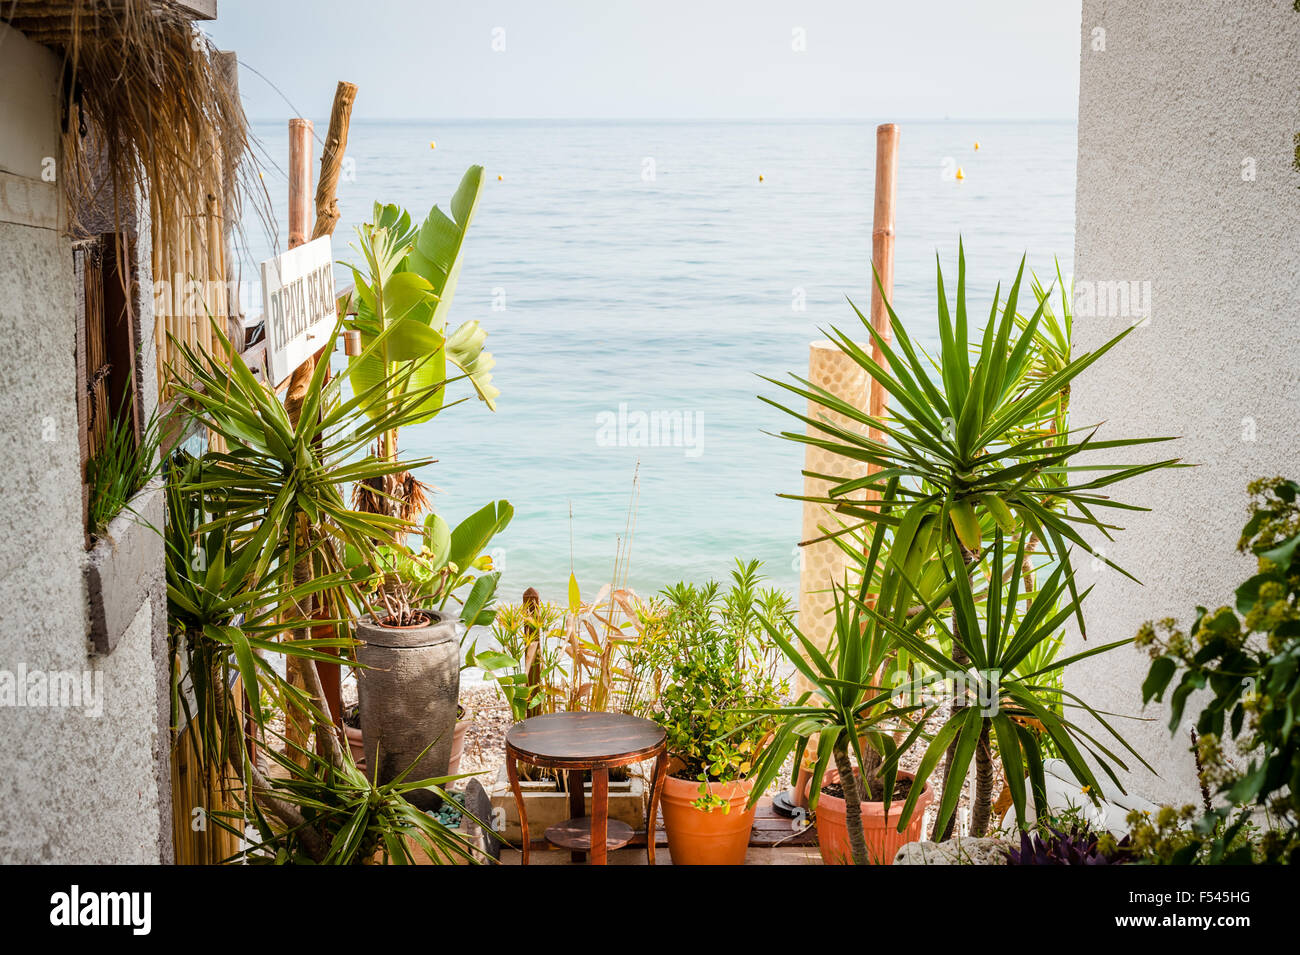 Potted plants and the Mediterranean, Eze sur Mer, Côte d' Azur, French Riviera - Stock Image